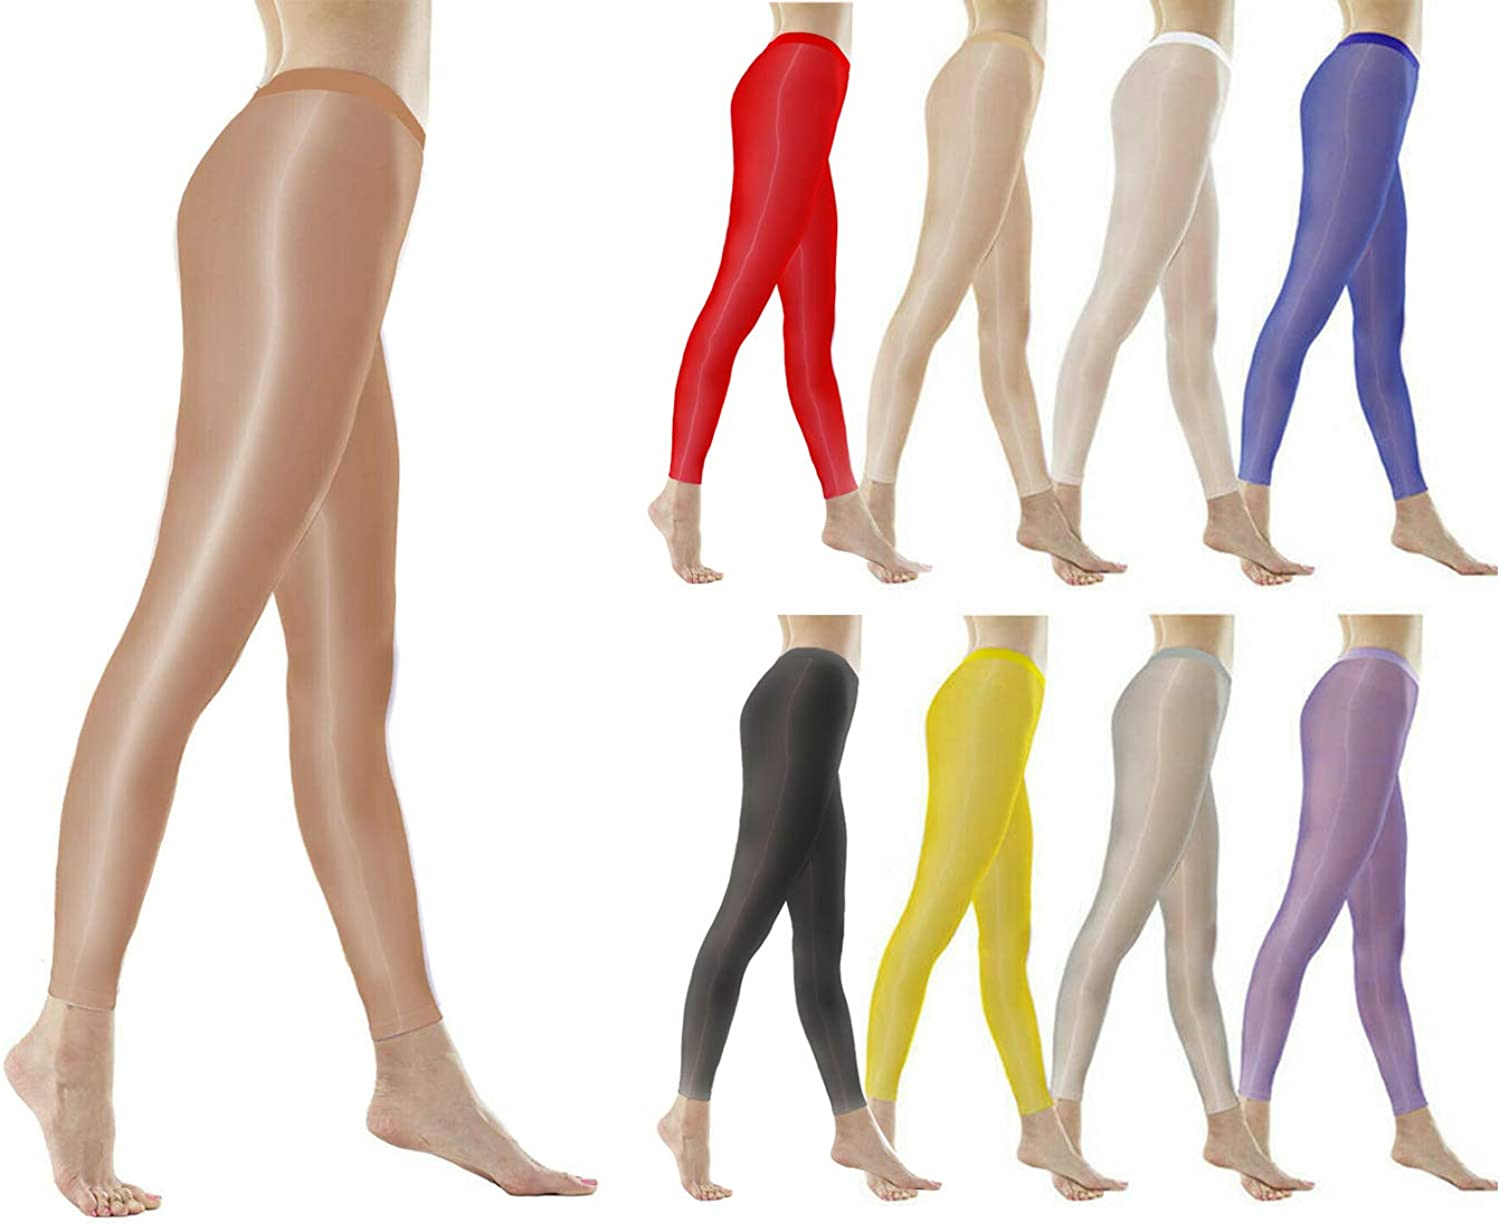 leesuo 9pcs/Set Women's Sexy Plus Size 8D Oil Shiny Glossy Stockings Transparent Shimmery Footless Tights